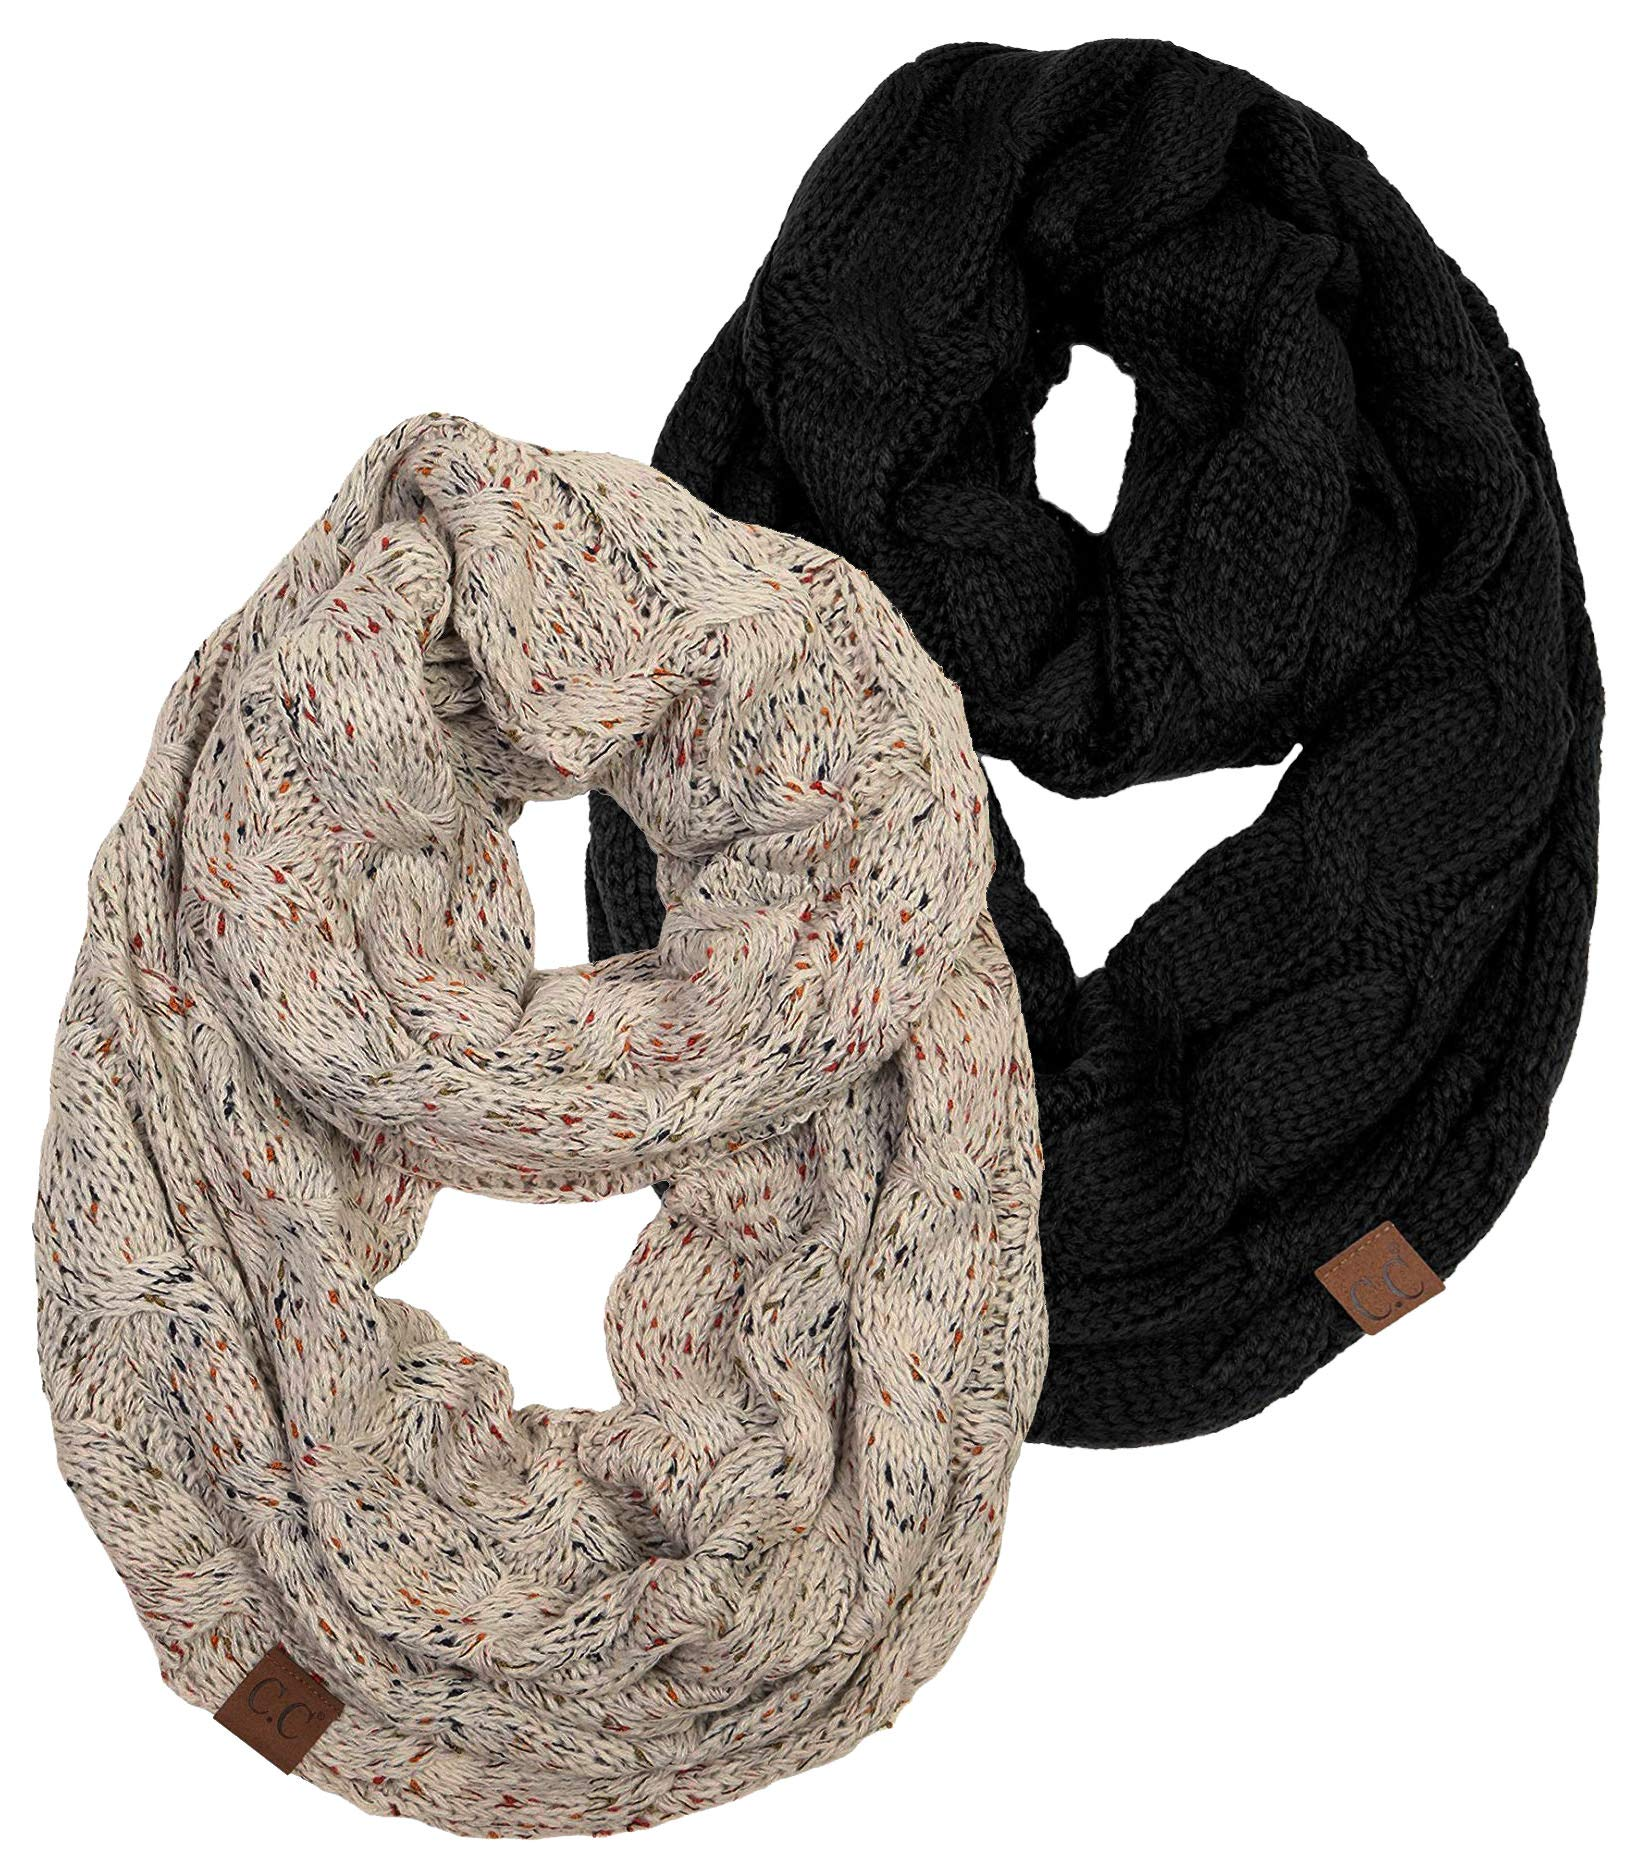 S1-2-6706 Infinity Scarf Bundle - 1 Confetti Oatmeal, 1 Solid Black (2 PACK) by Funky Junque